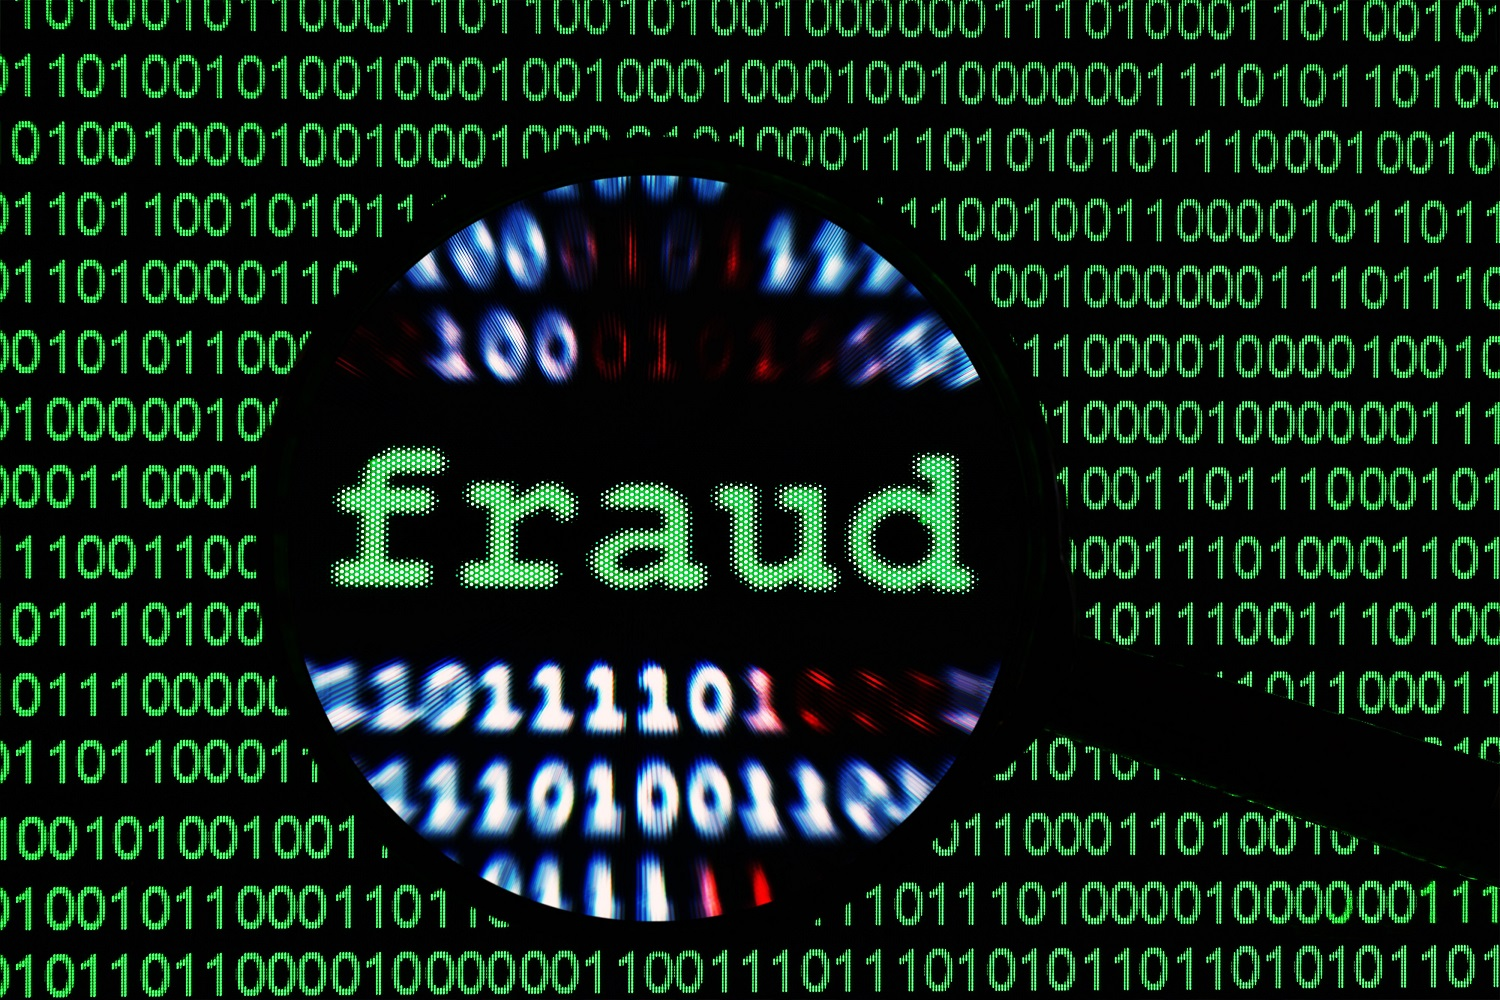 IntellectEU uses Intel SGX to secure ClaimShare, its fraud detection platform